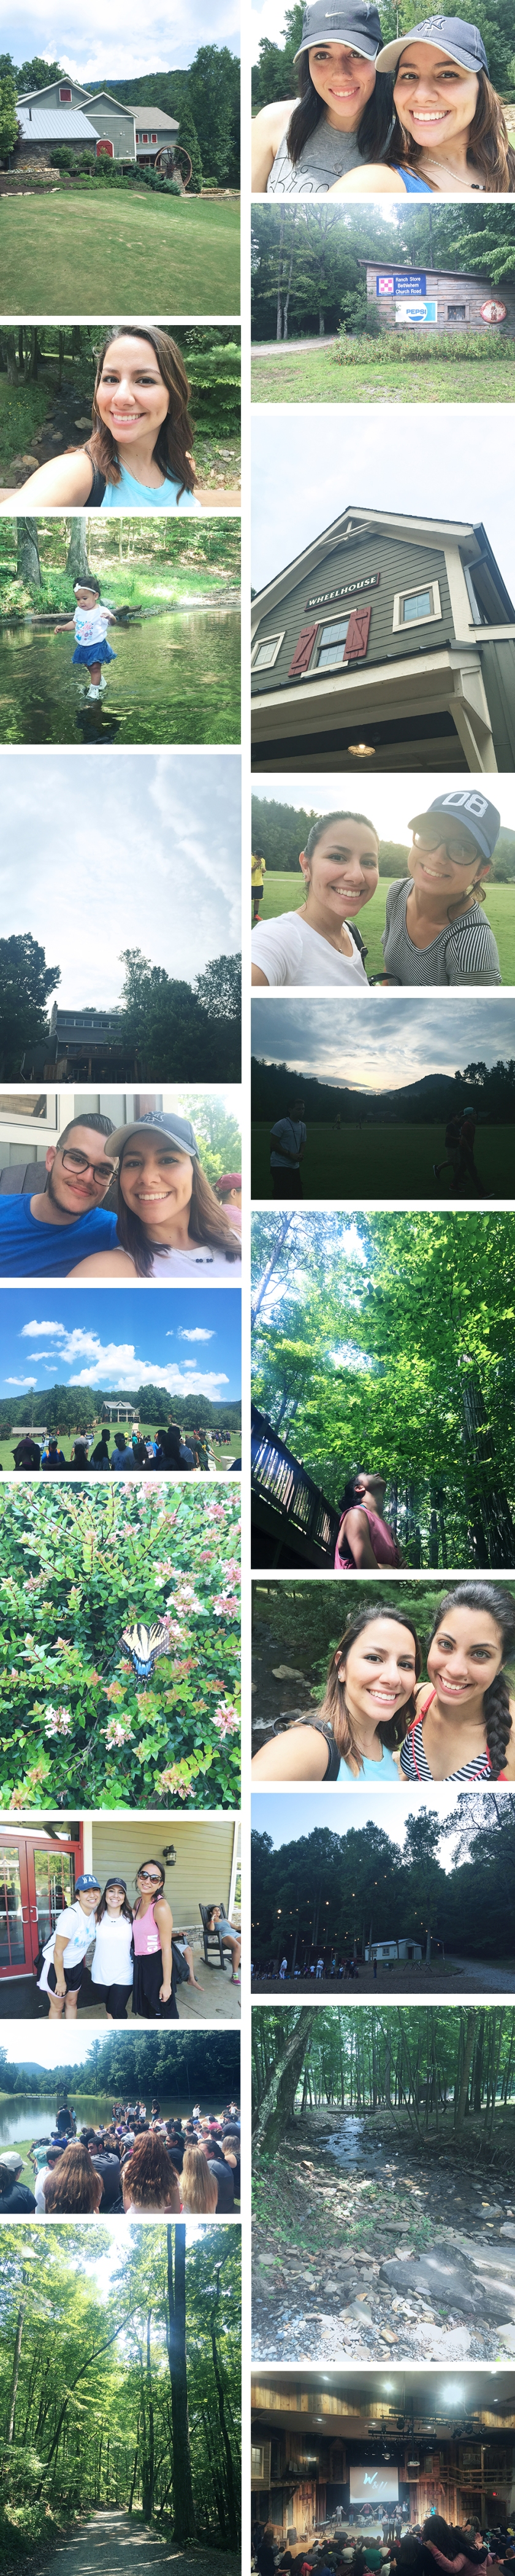 Camp2015_Collage